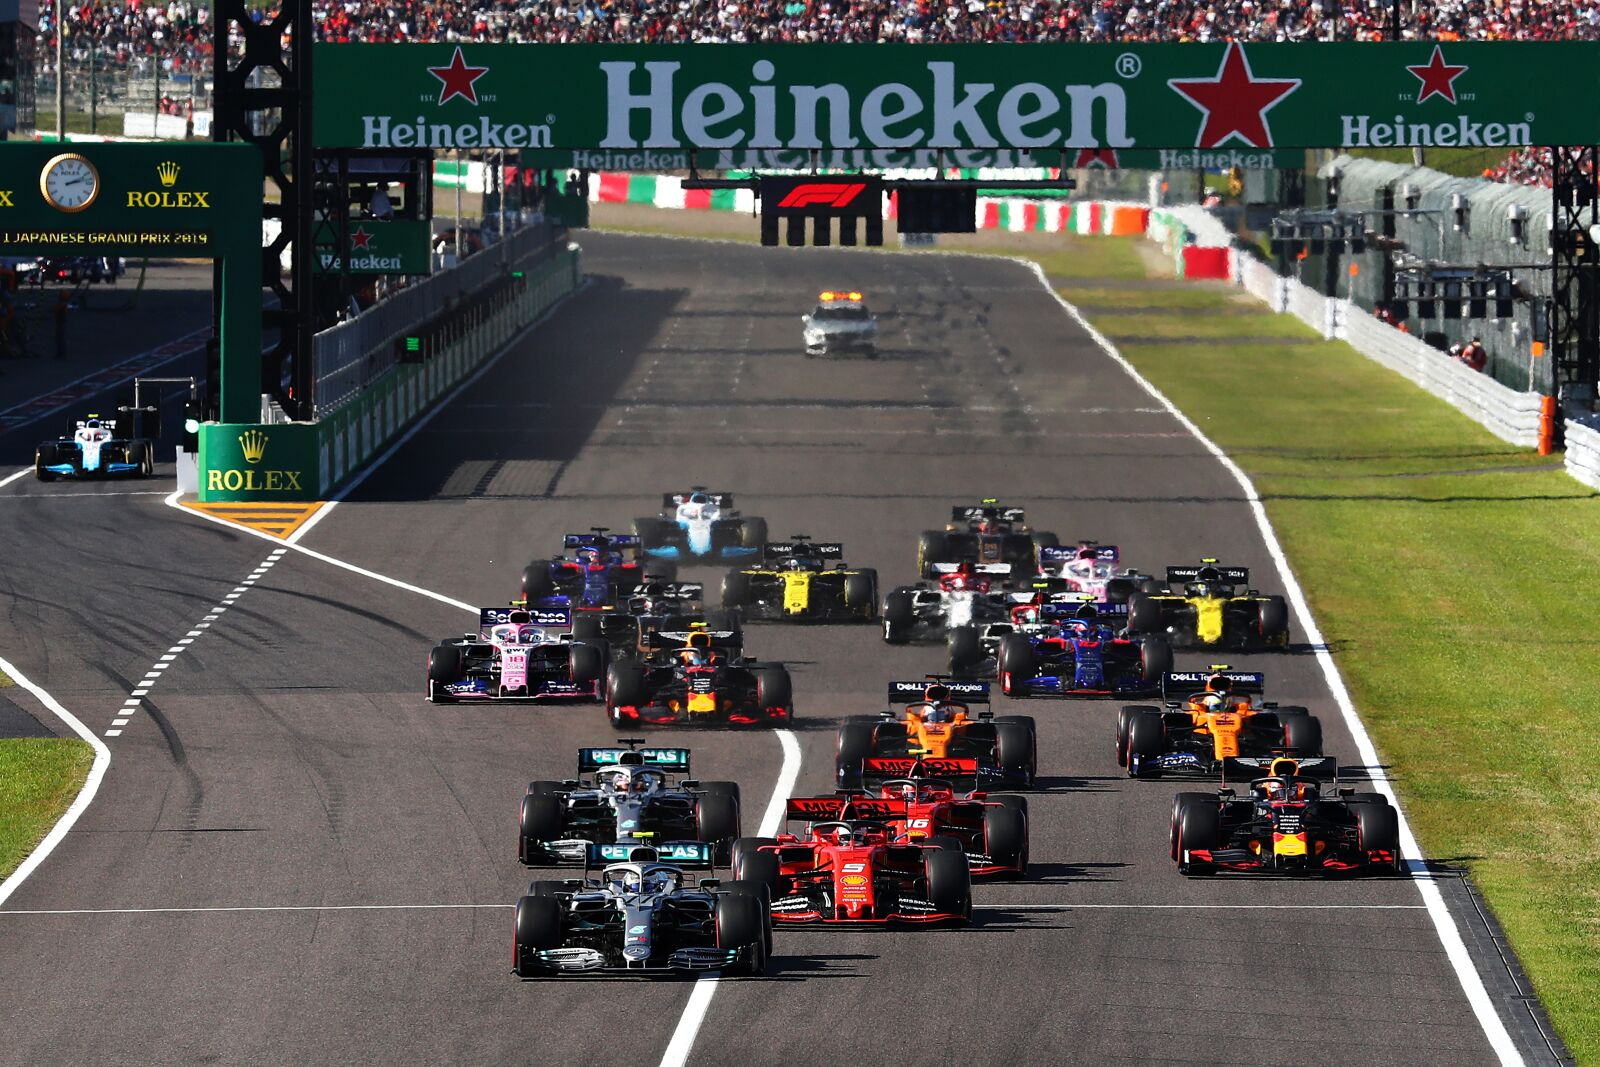 Formula 1: Did Valtteri Bottas jump the start? On-board gives clear answer